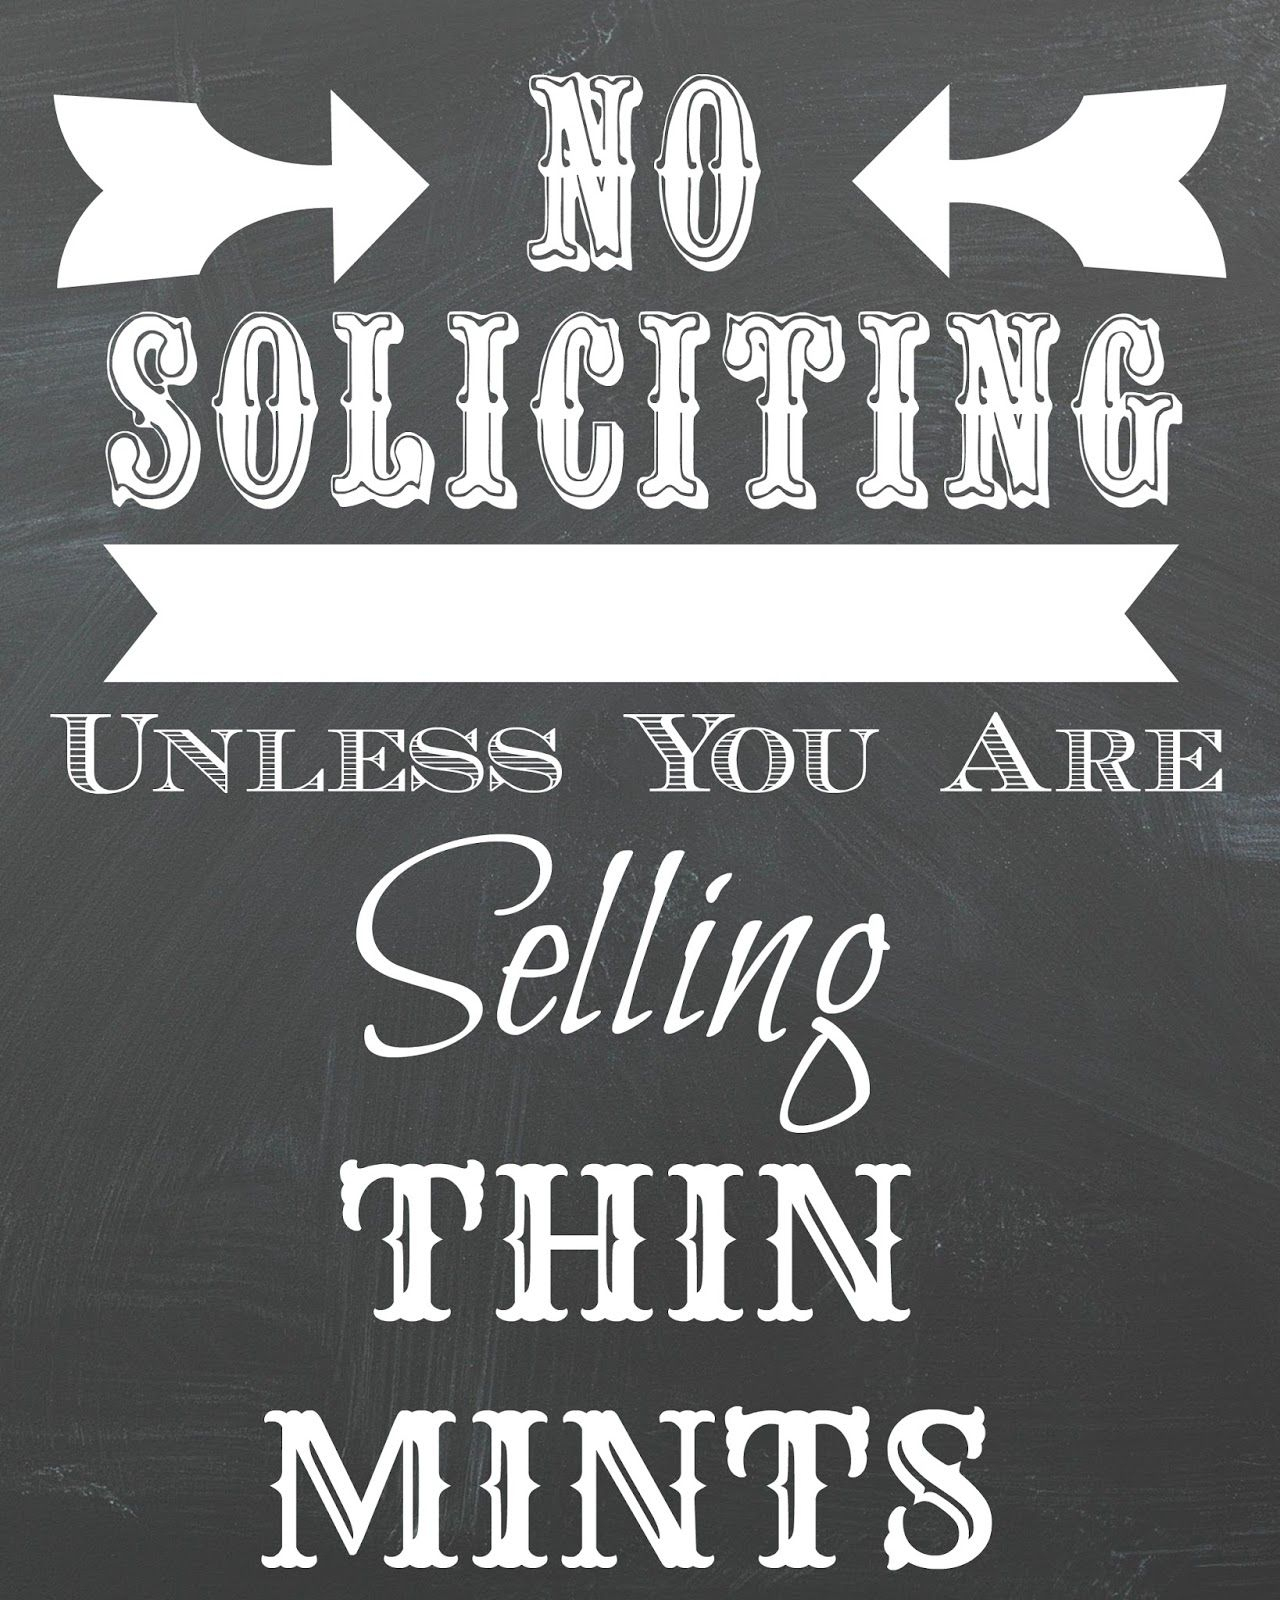 Dorothy Sue And Millie B's Too: Free No Soliciting Chalkboard - Free Printable No Soliciting Sign